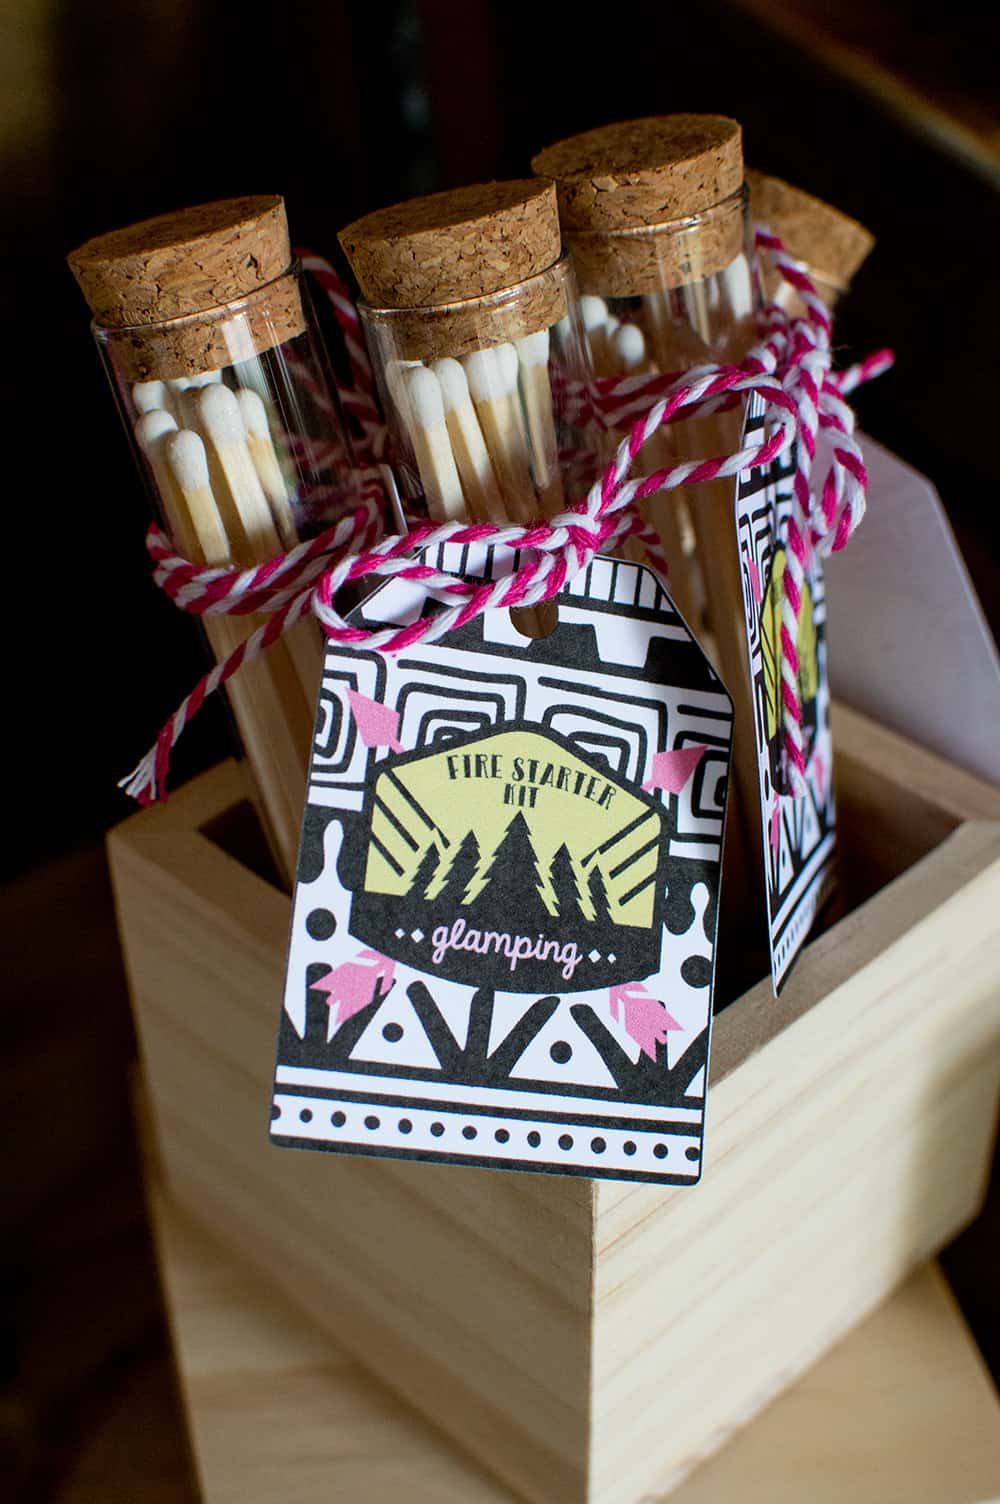 Glamping fire starter kit party favors